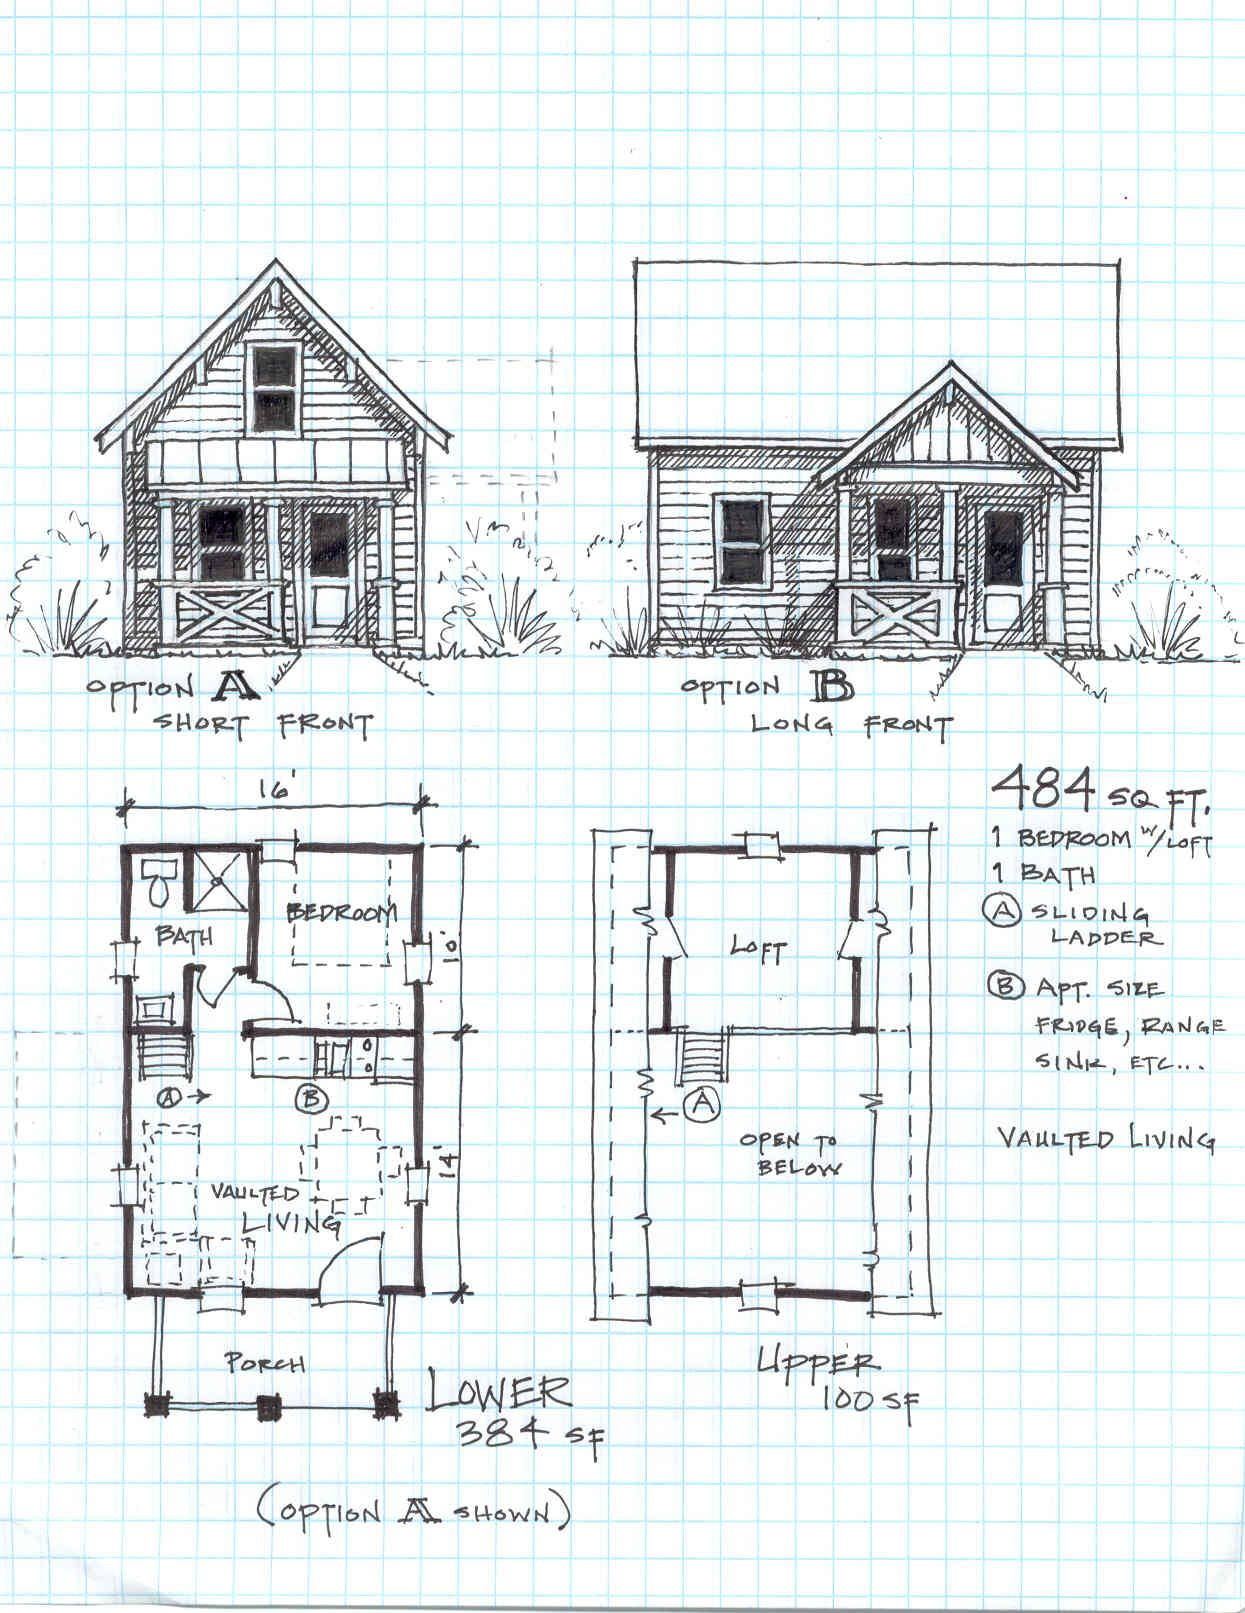 30 Small Cabin Plans For The Homestead Prepper The Survivalist Blog Small Cabin Plans Small House Floor Plans Cabin Plans With Loft